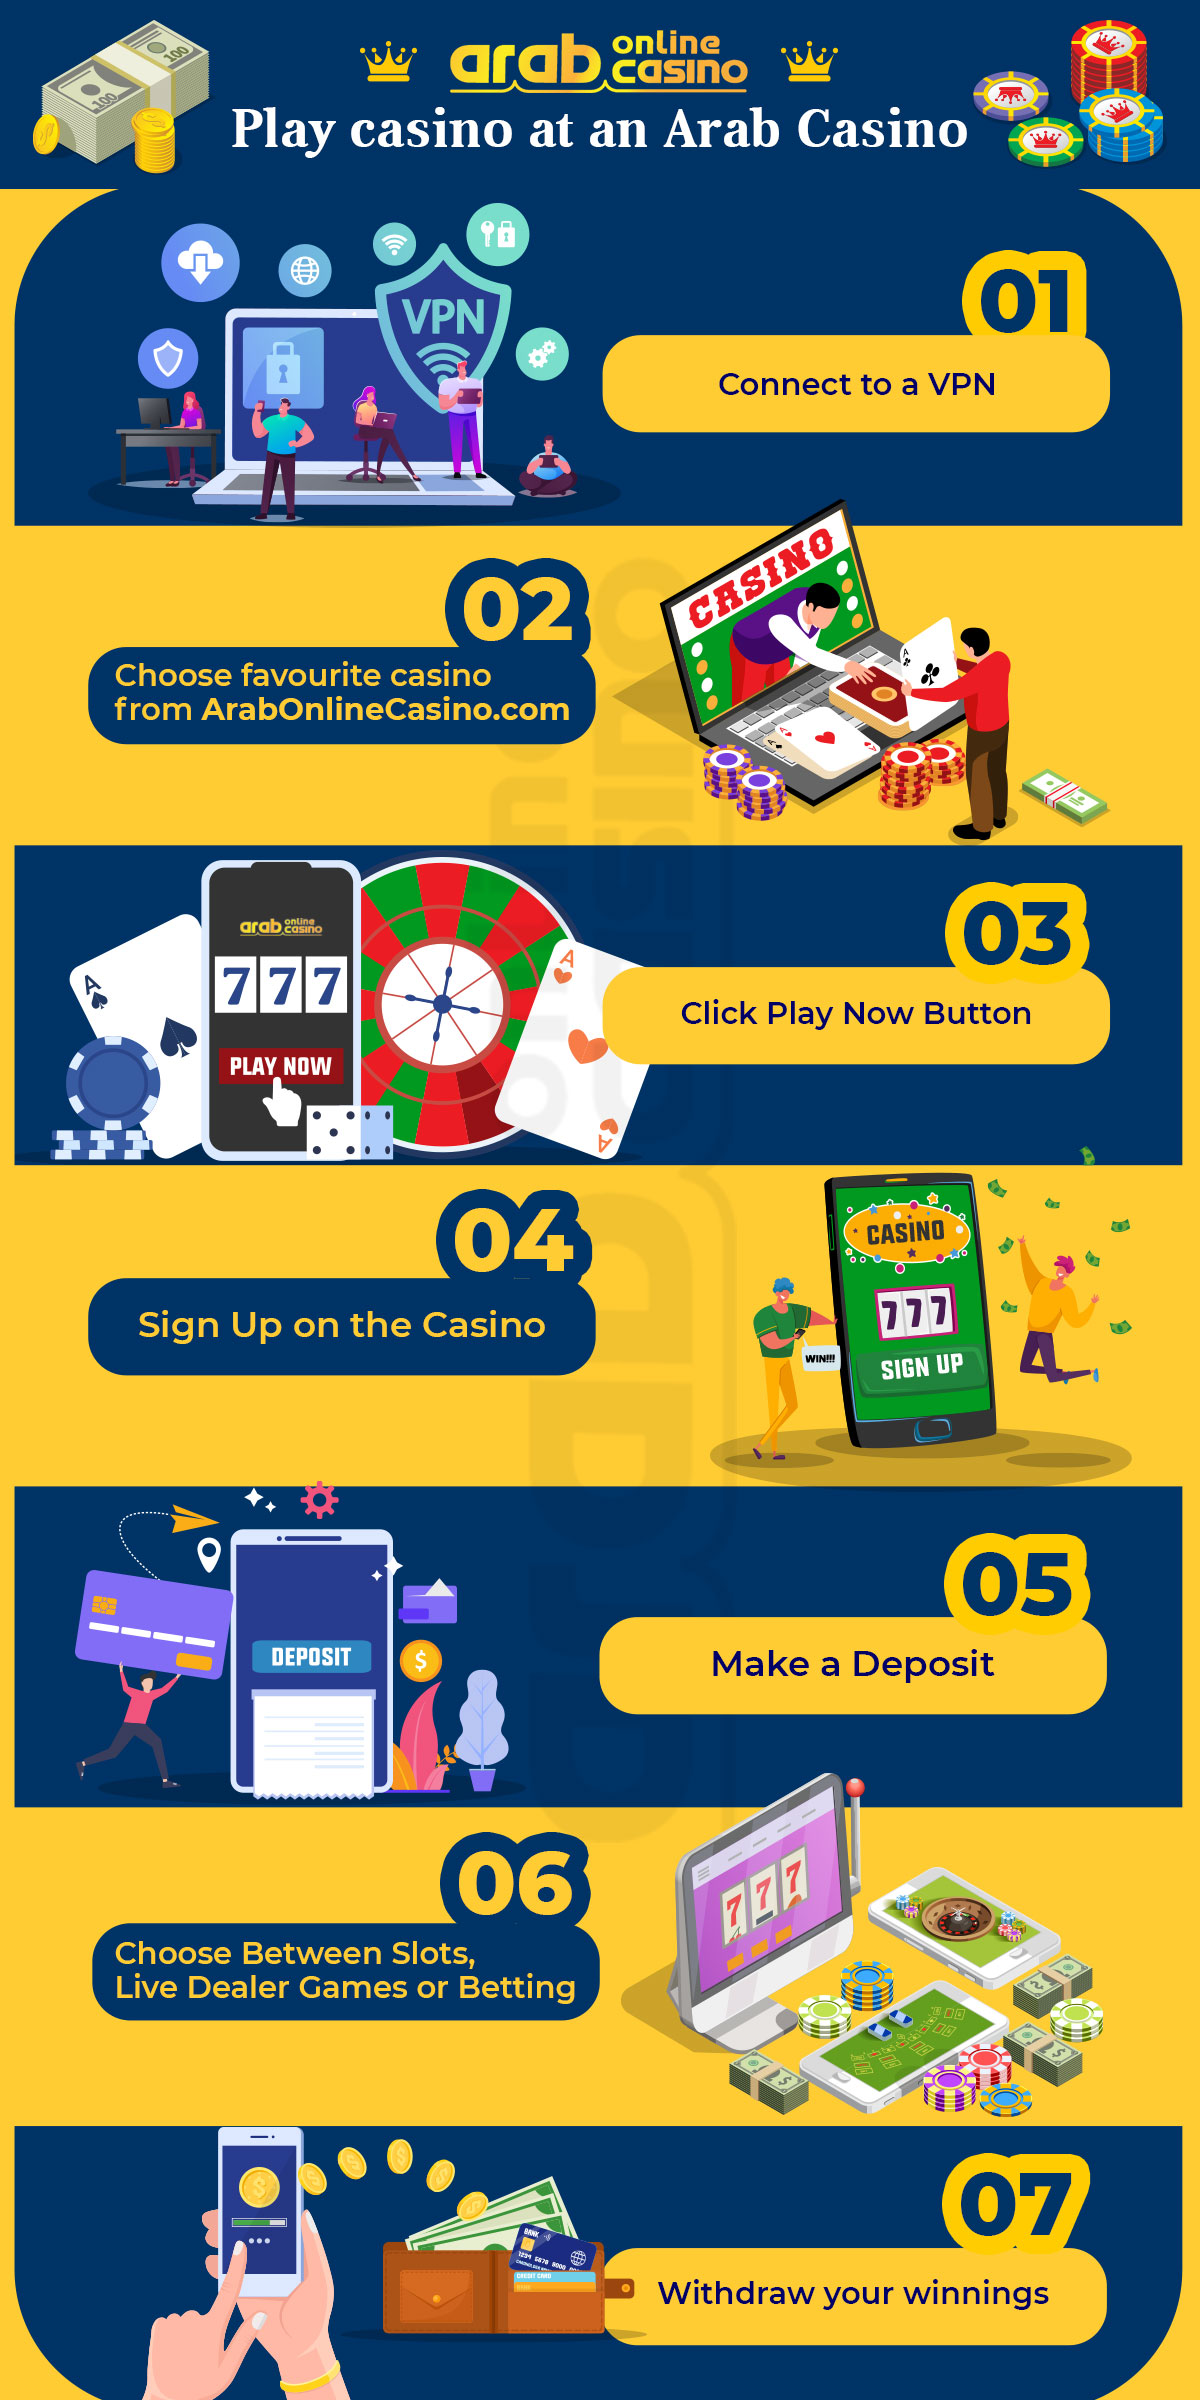 arab online casino infographic step by step guide